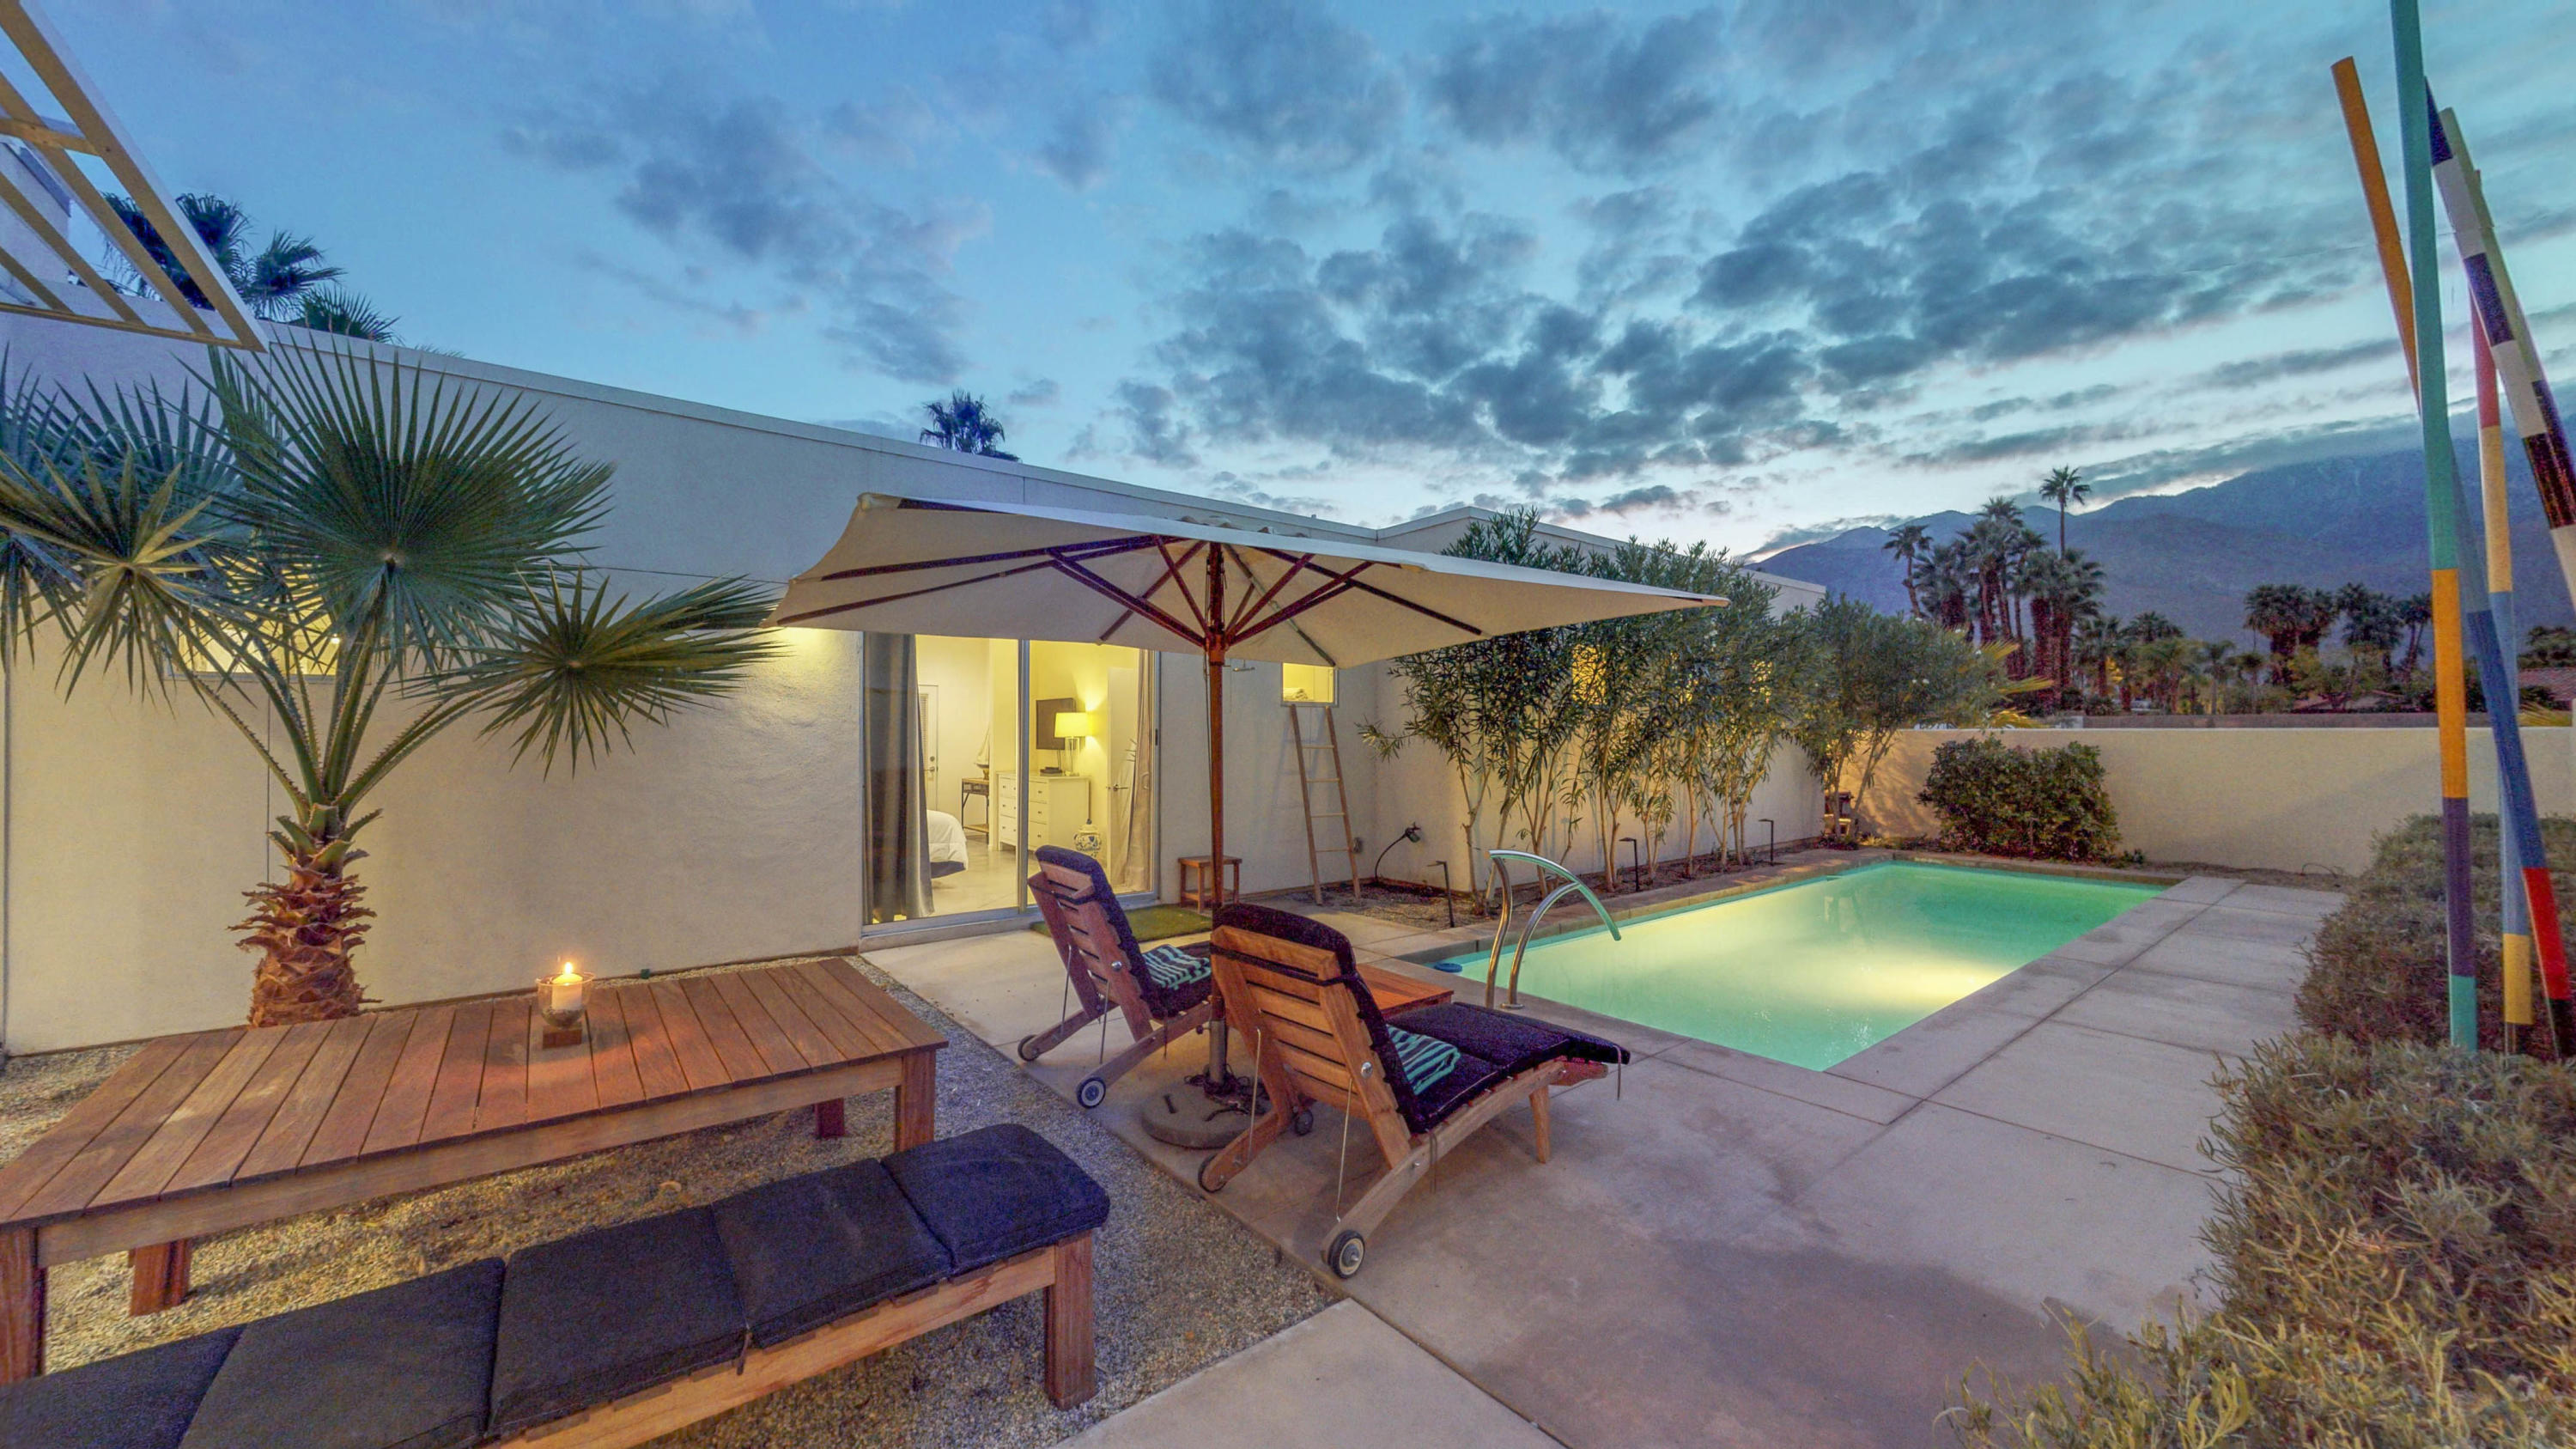 1490 Sonora Court, Palm Springs, California 92264, 4 Bedrooms Bedrooms, ,4 BathroomsBathrooms,Residential,For Sale,1490 Sonora Court,219034251